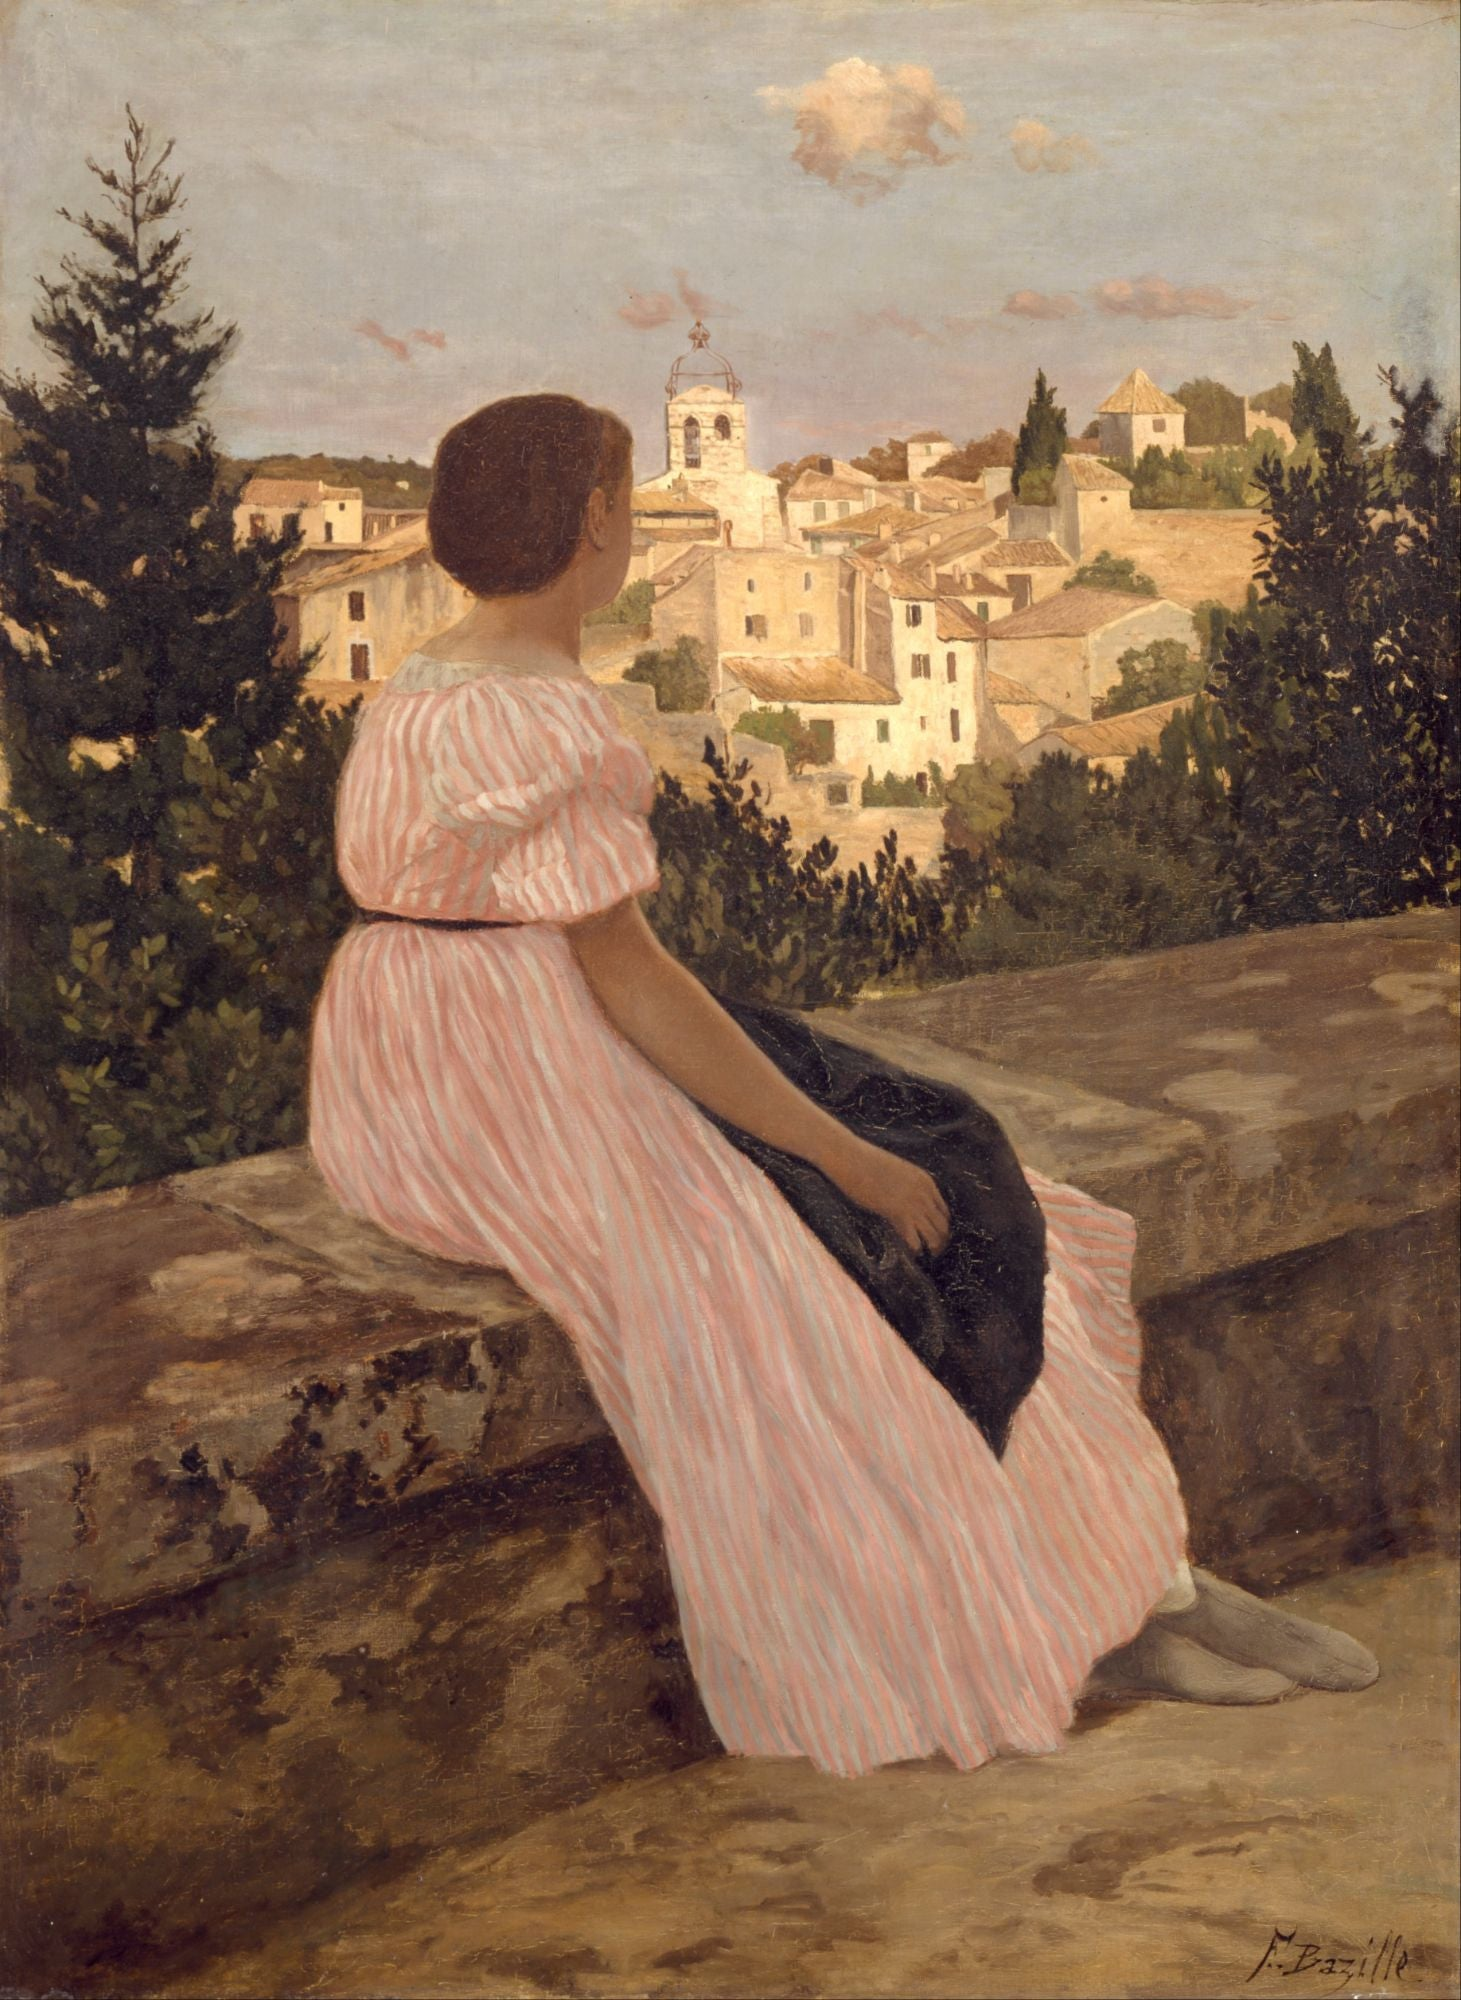 Frédéric Bazille | Buy Posters, Frames, Canvas, Digital Art & Large Size Prints Of The Famous Old Master's Artworks